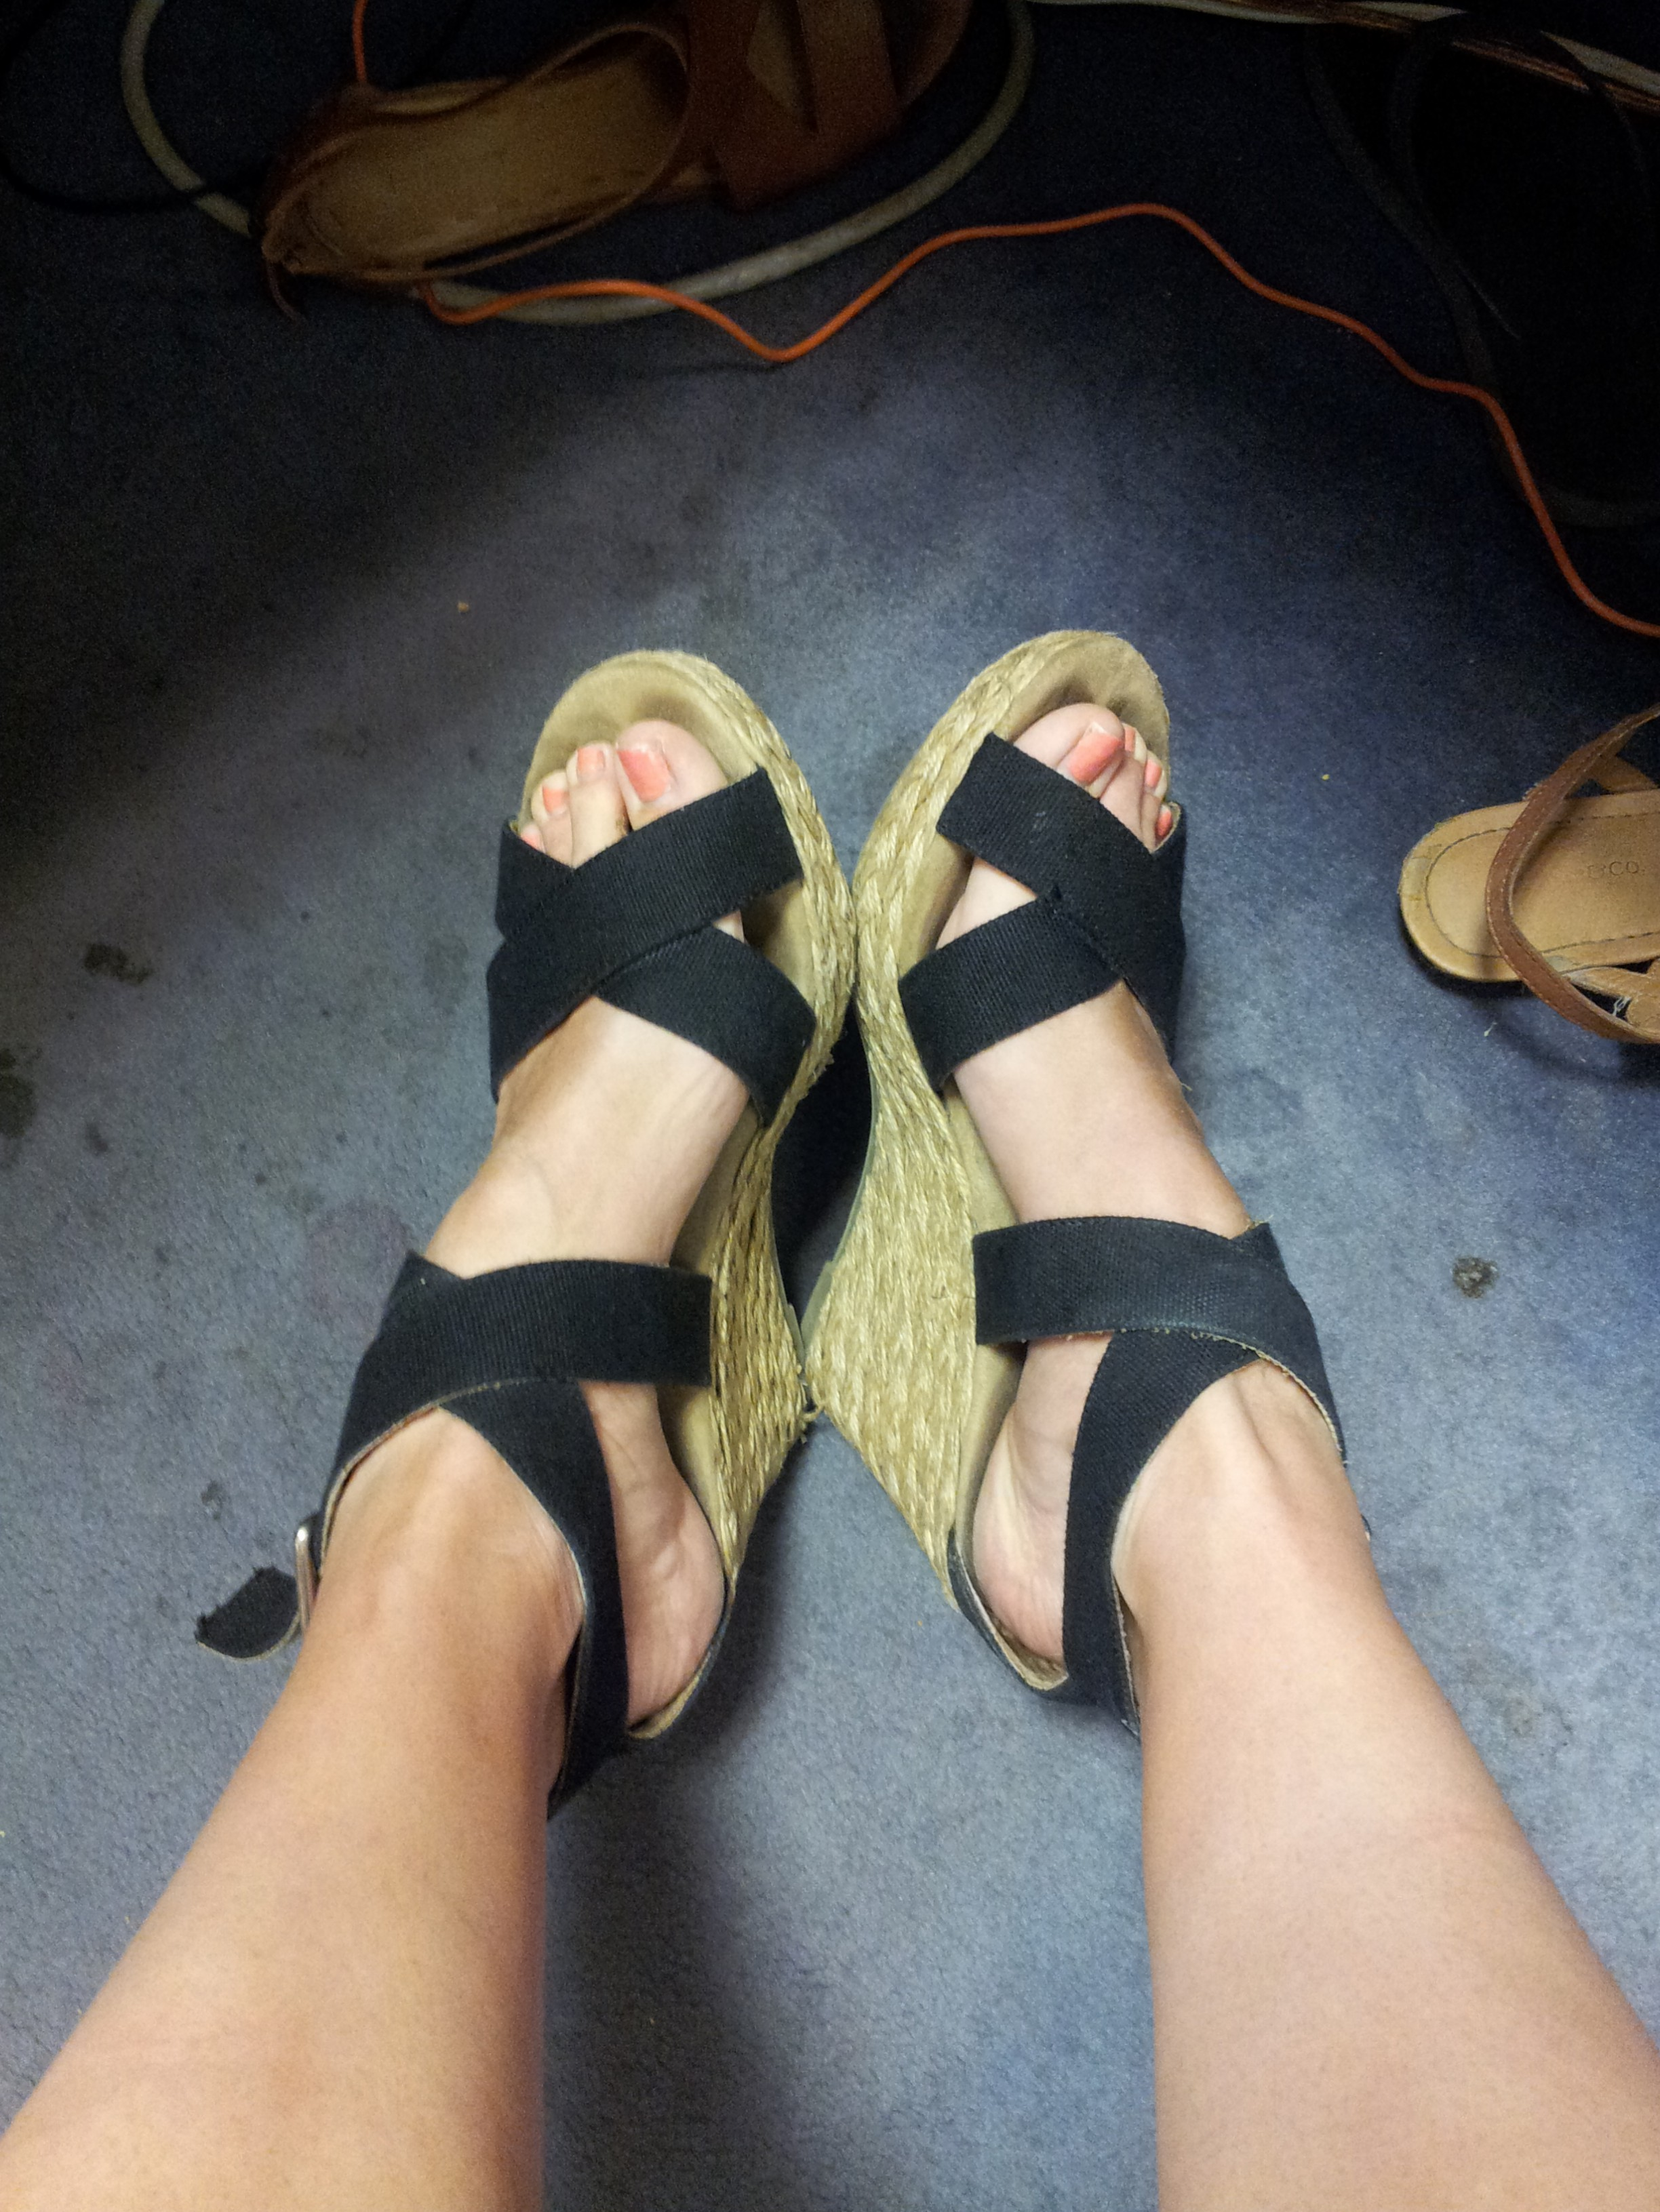 Candid wedges in post office - 2 2